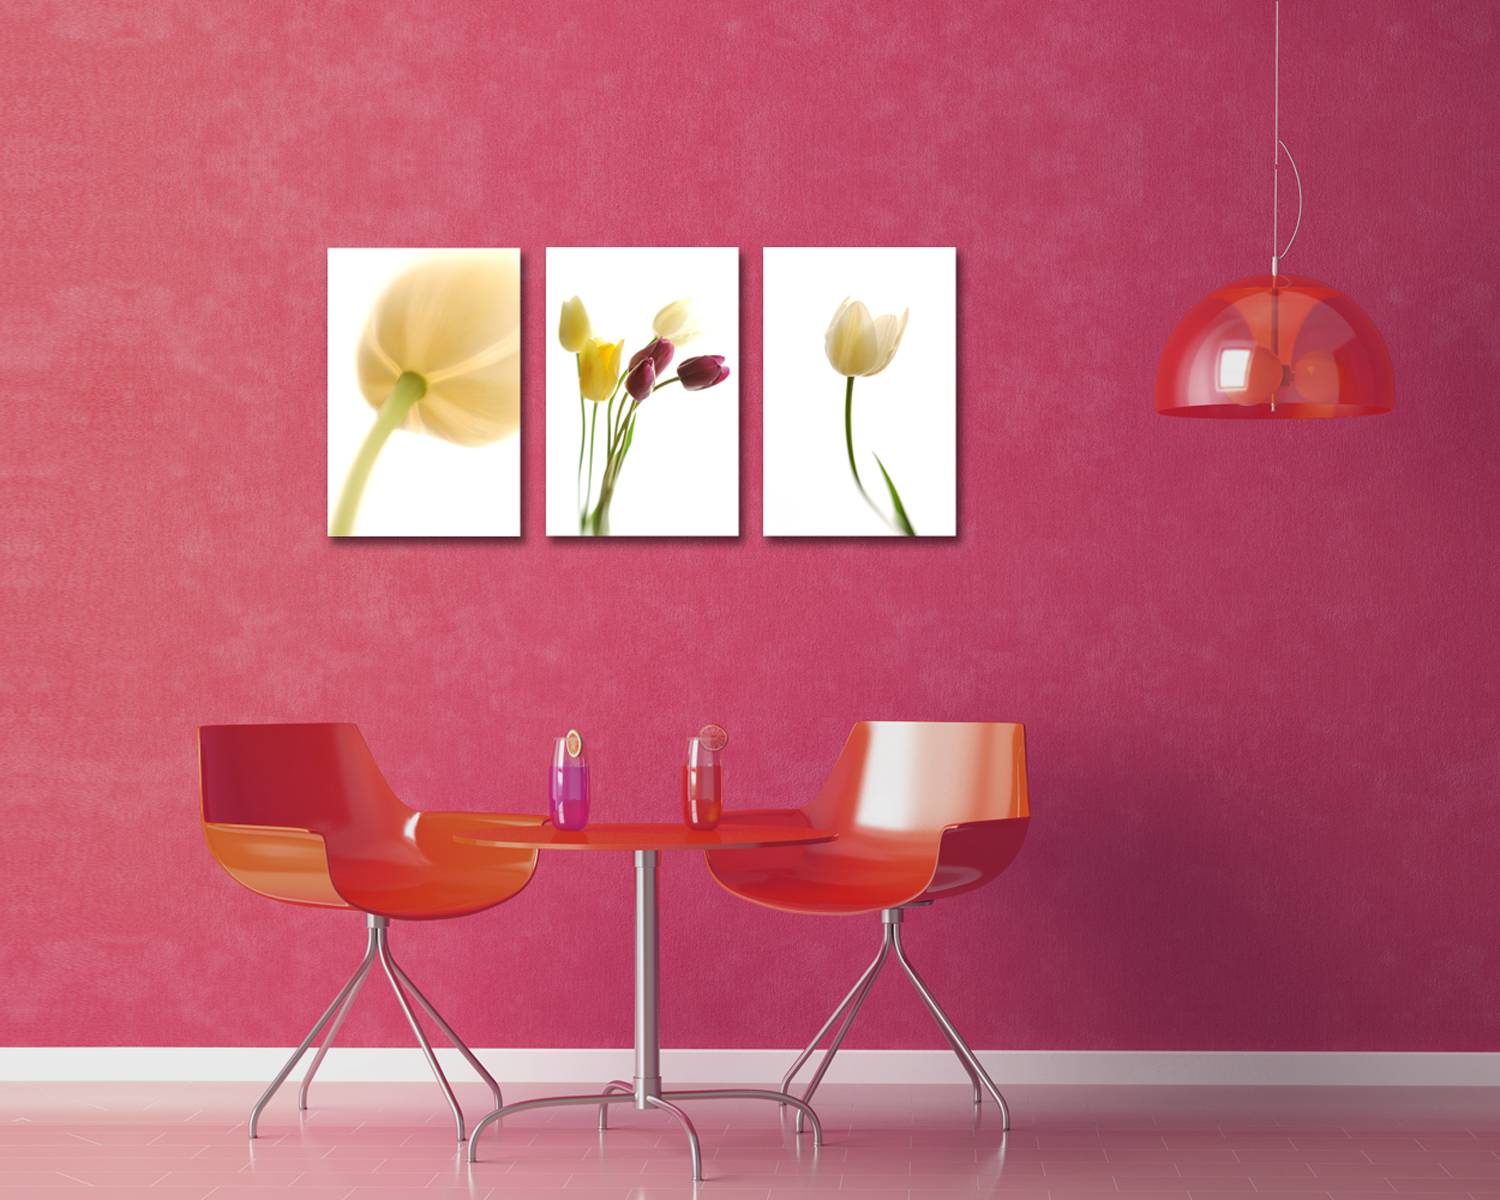 three tulips images in a dining area